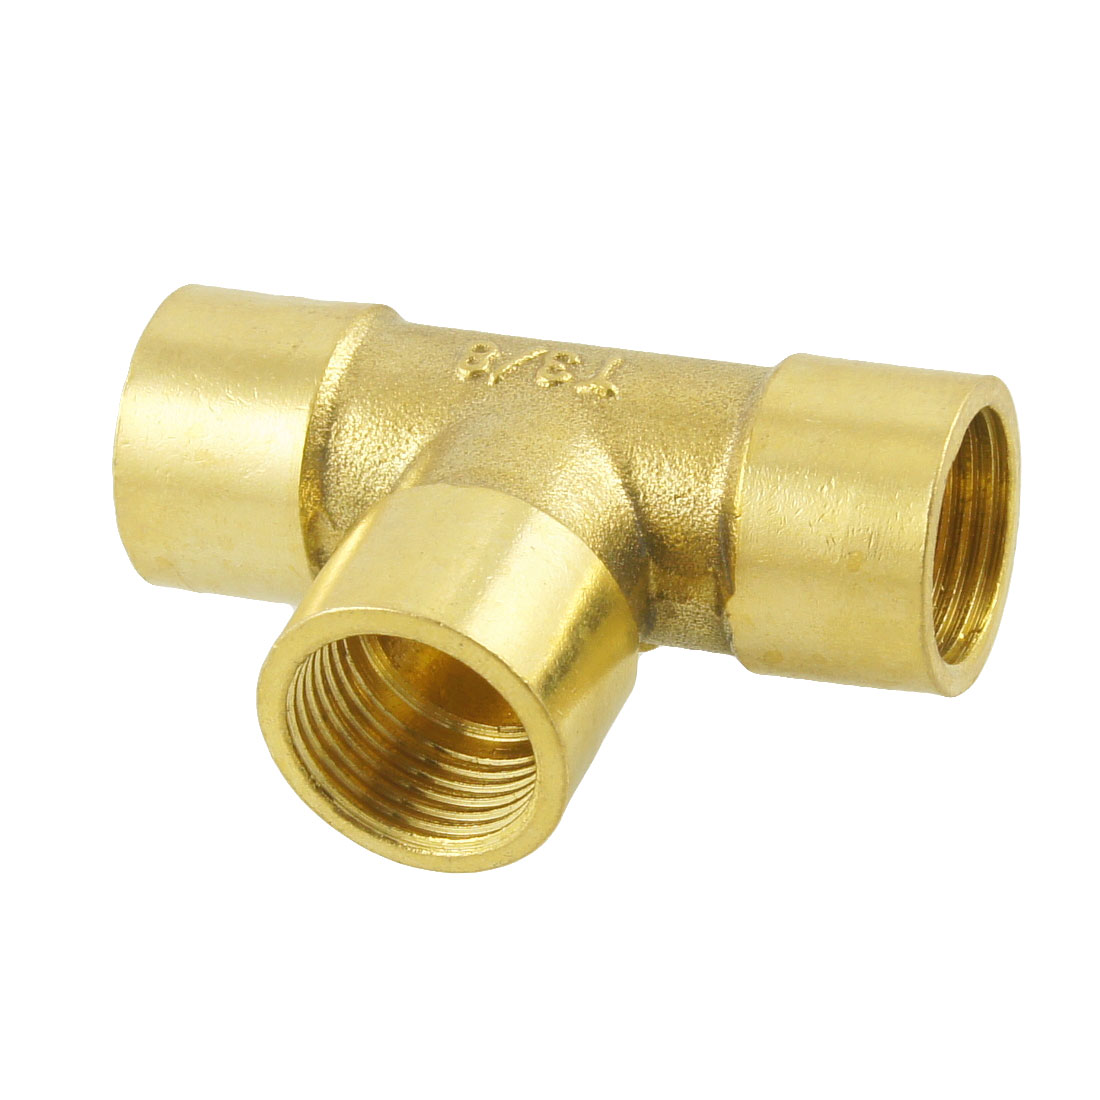 "3/8"" PT Female Thread 3 Way Equal Tee Coupling Brass Pipe Fitting Adapter"